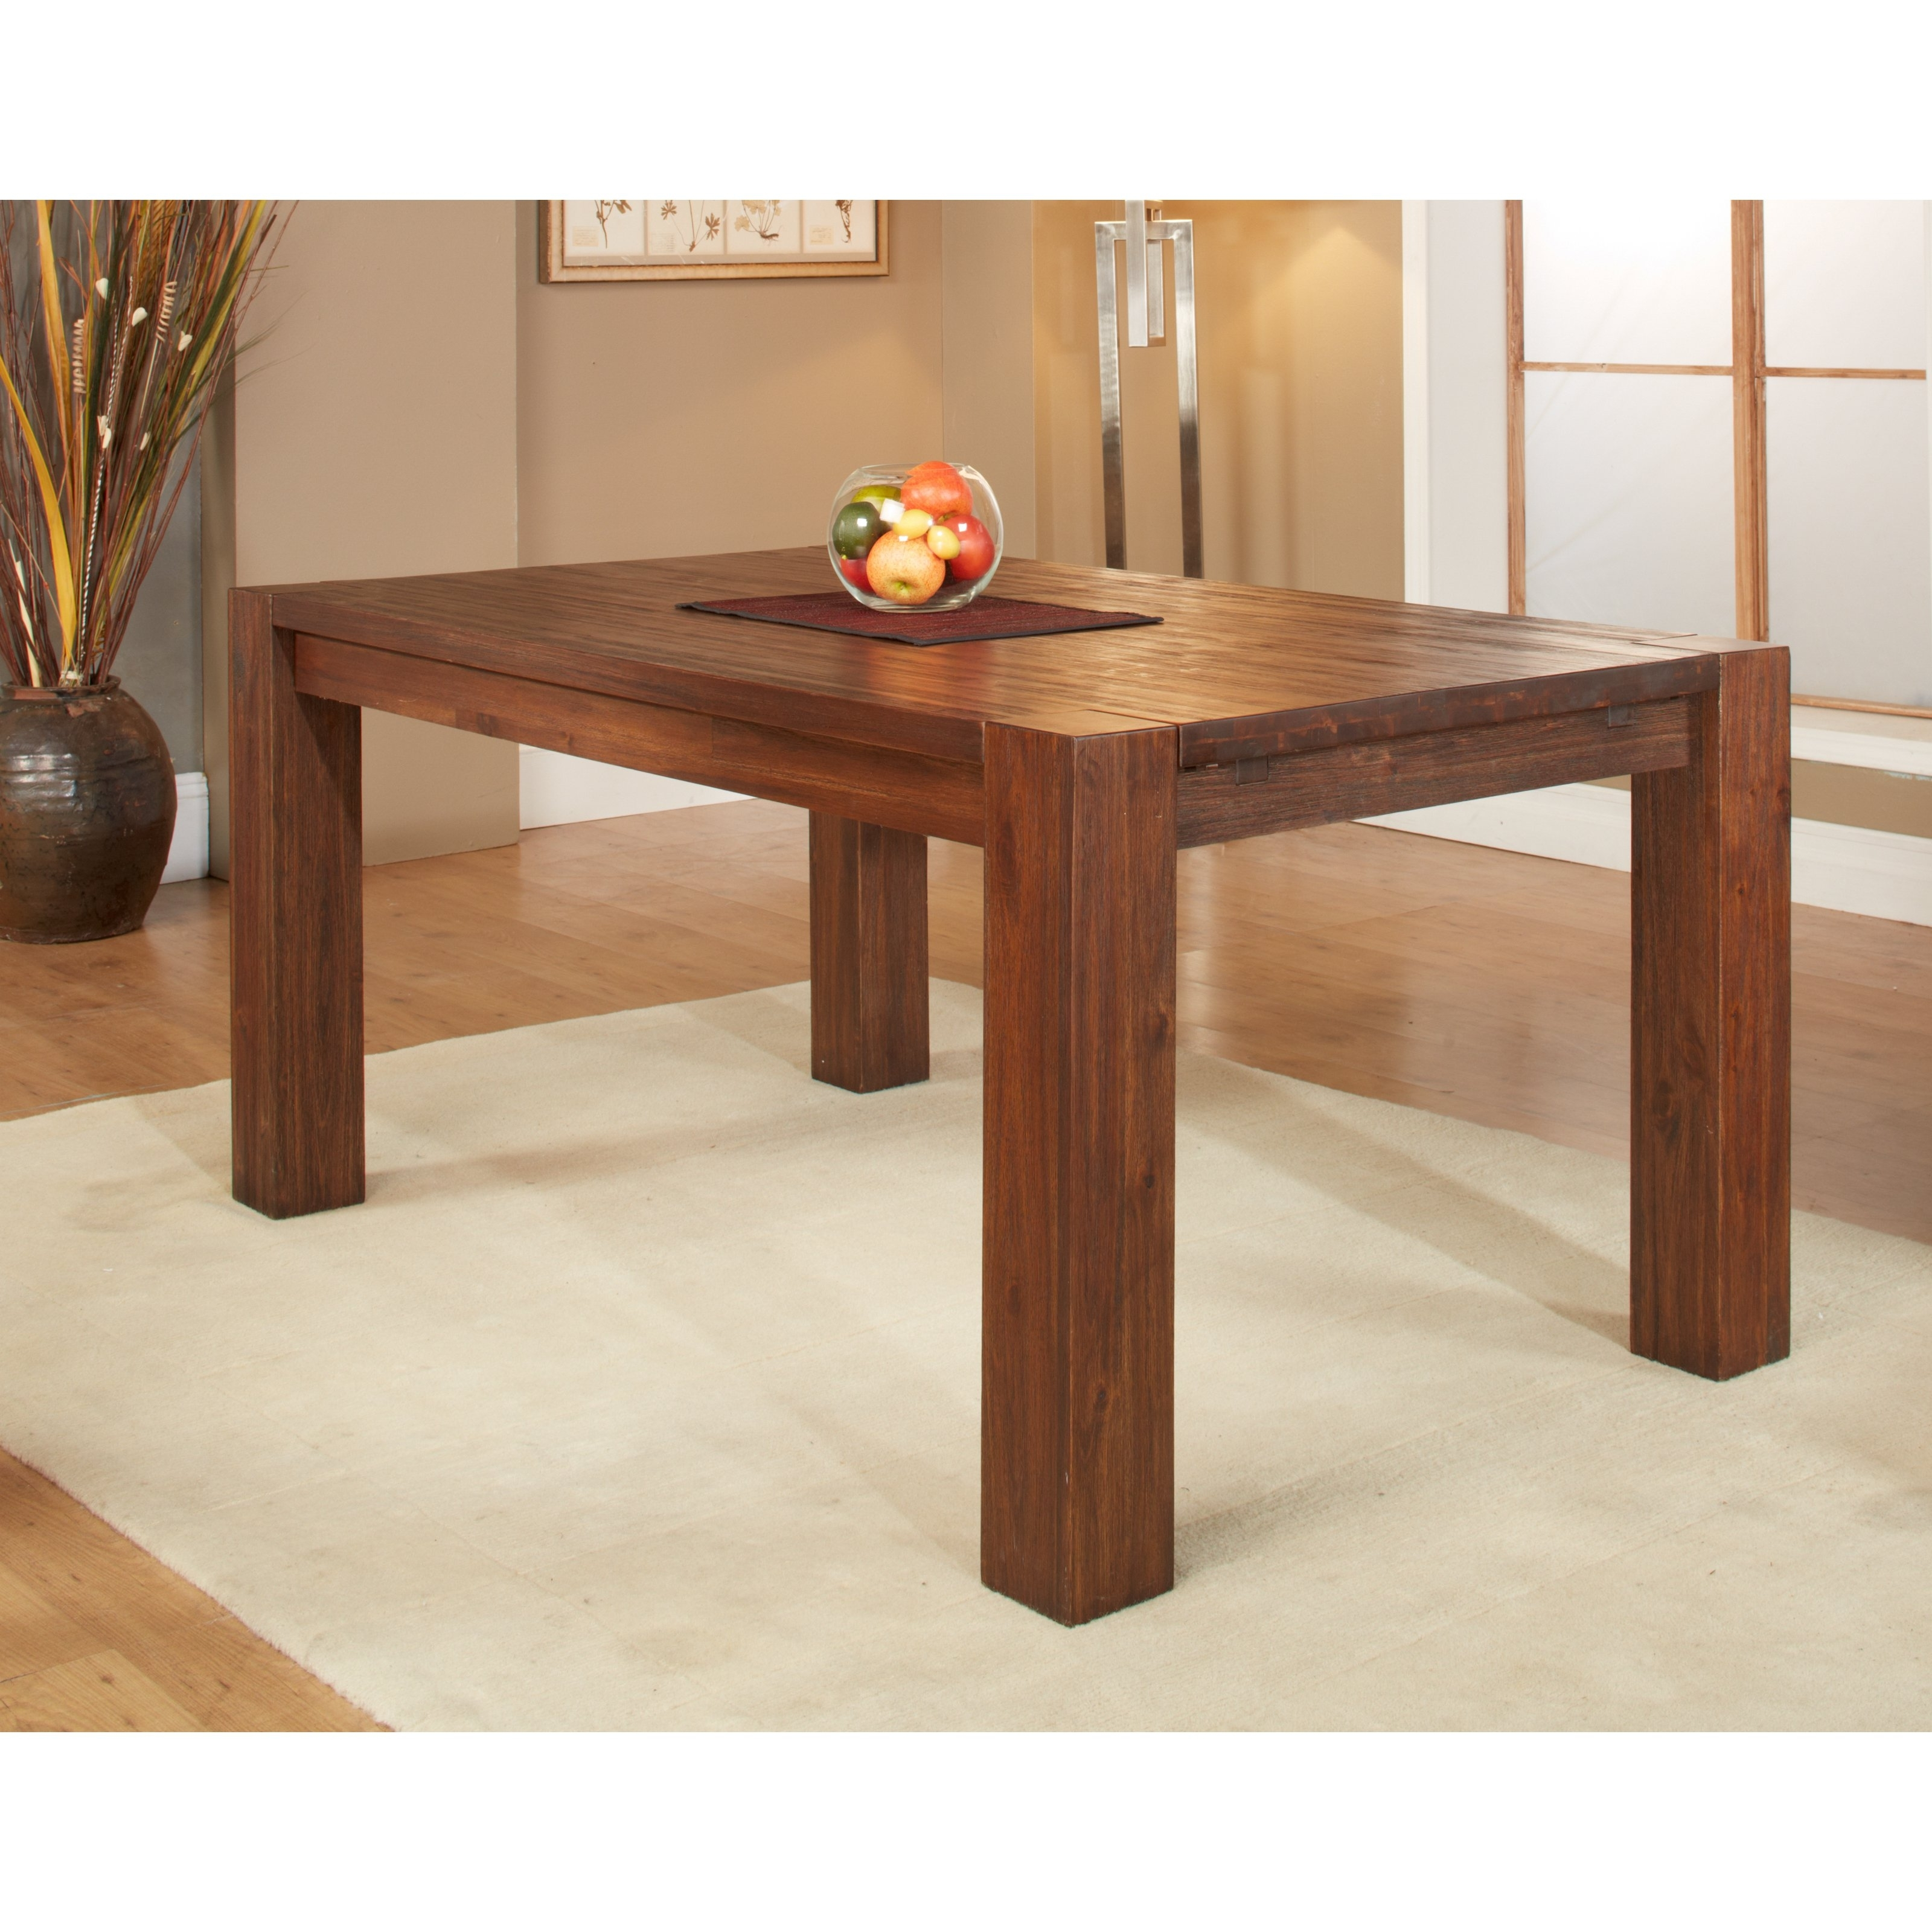 Solid Wood Dining Tables Inside Most Recently Released Things To Know Before Buying A Solid Wood Dining Table – Blogalways (View 16 of 25)